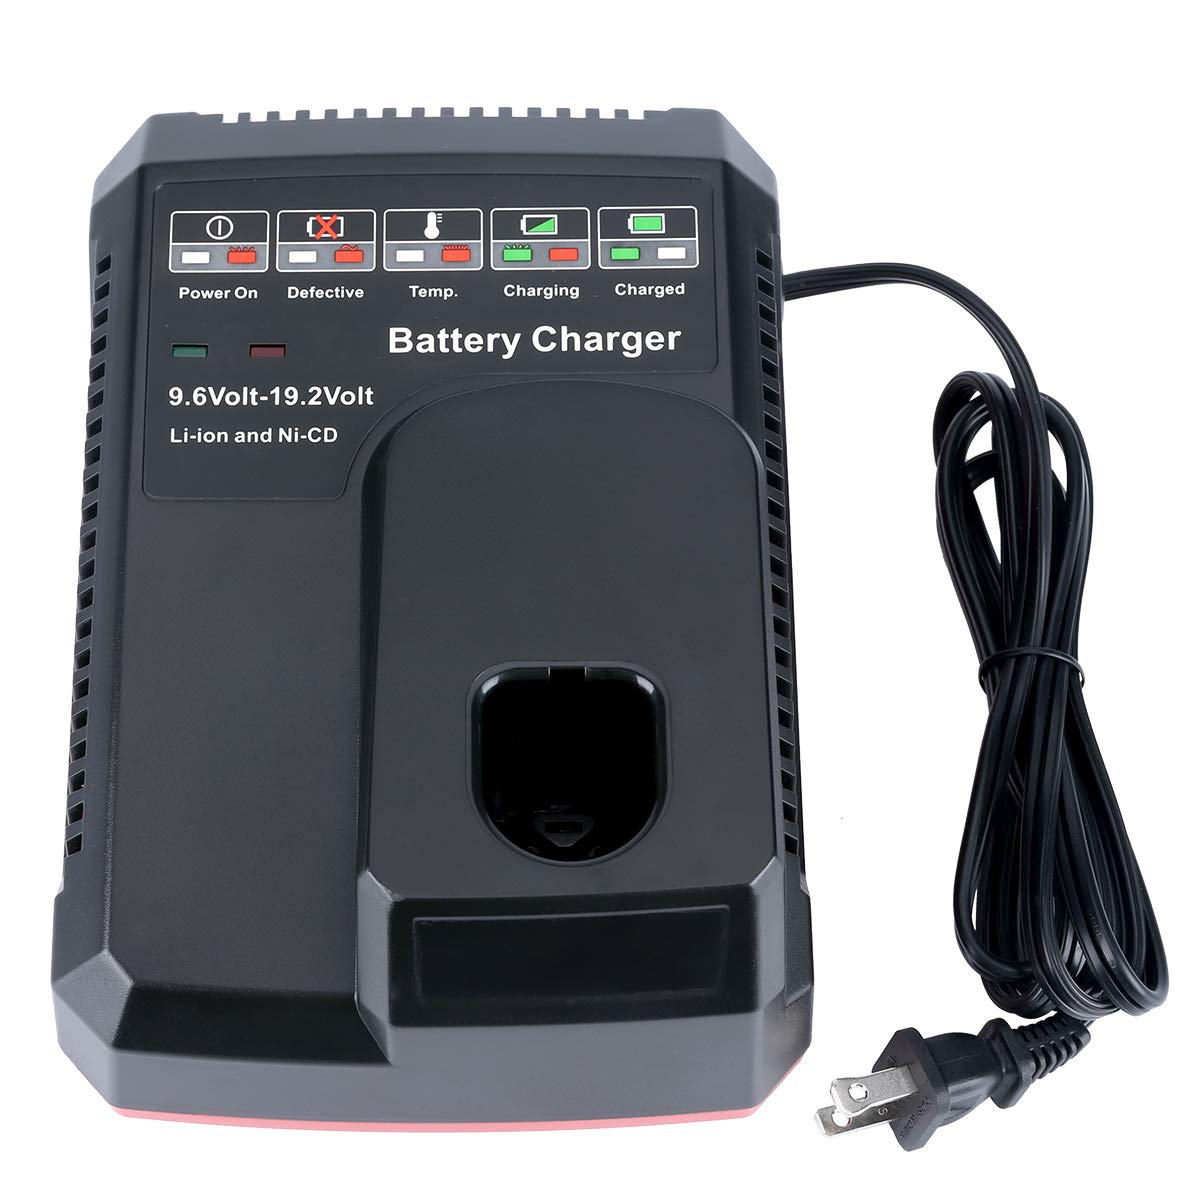 19.2 volt Lithium-Ion & Ni-cad Battery Charger for Craftsman DieHard C3 315.115410 315.11485 130235021 130235021